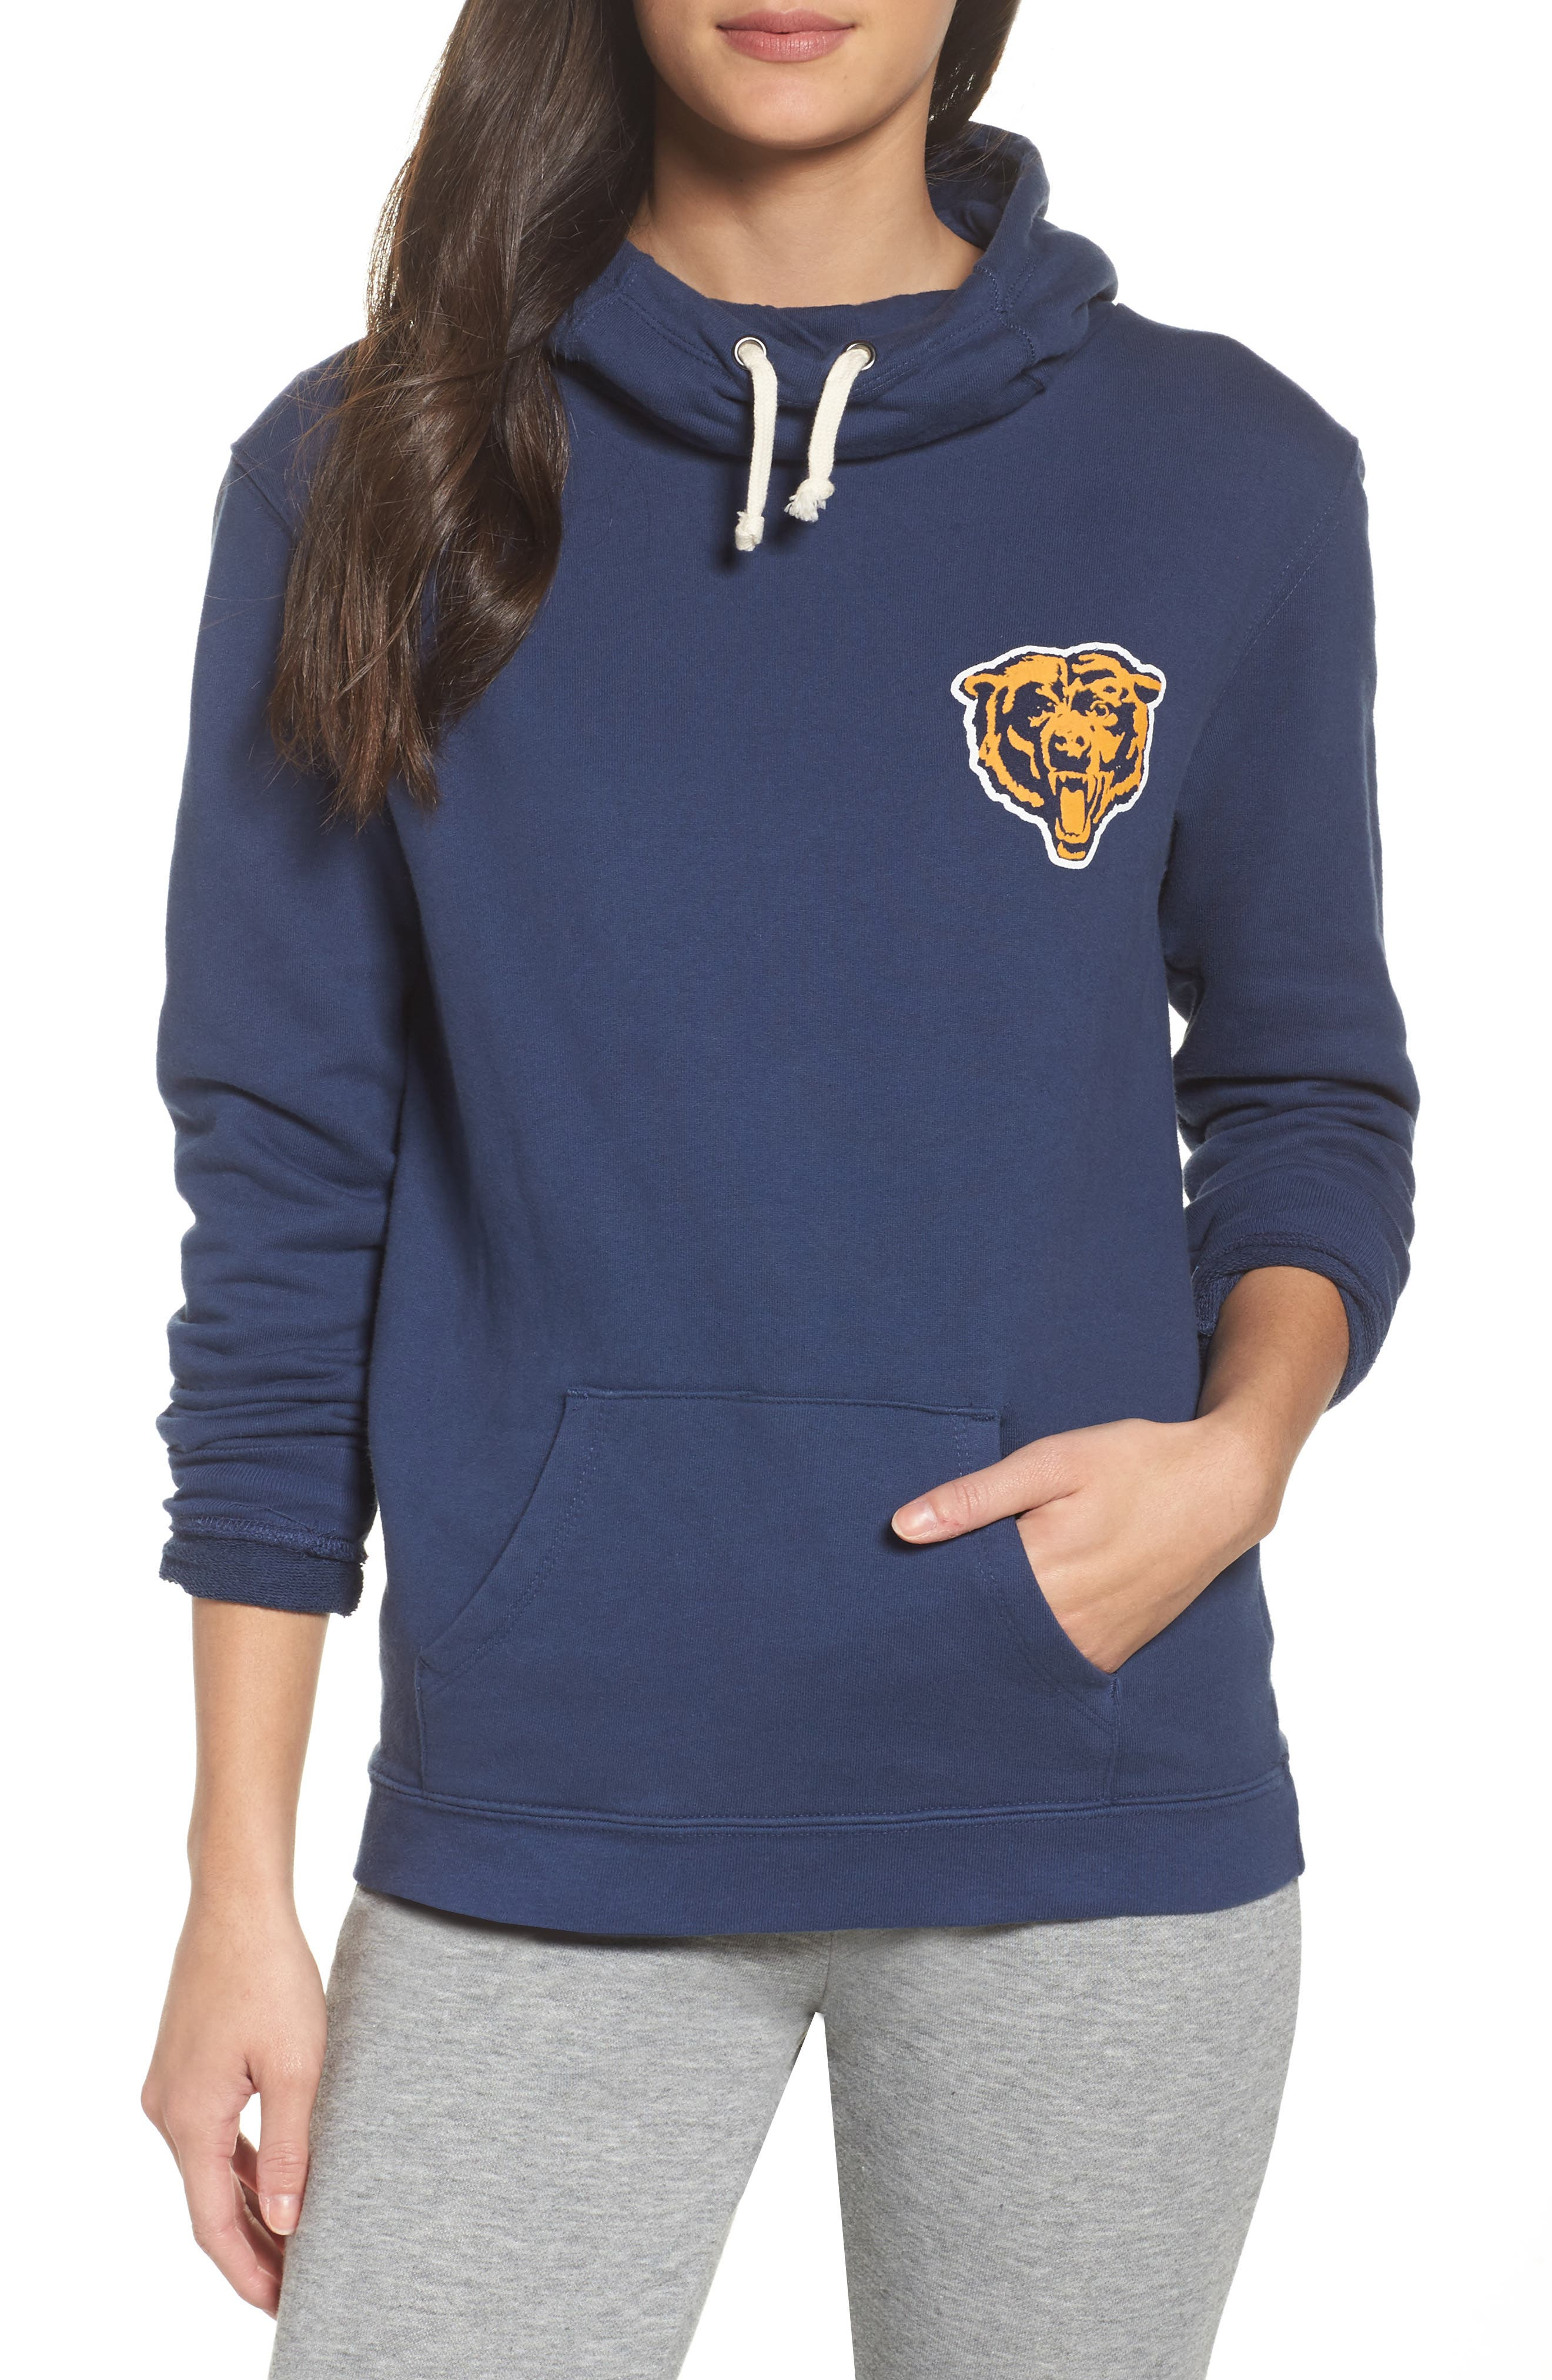 Main Image - Junk Food NFL Chicago Bears Sunday Hoodie